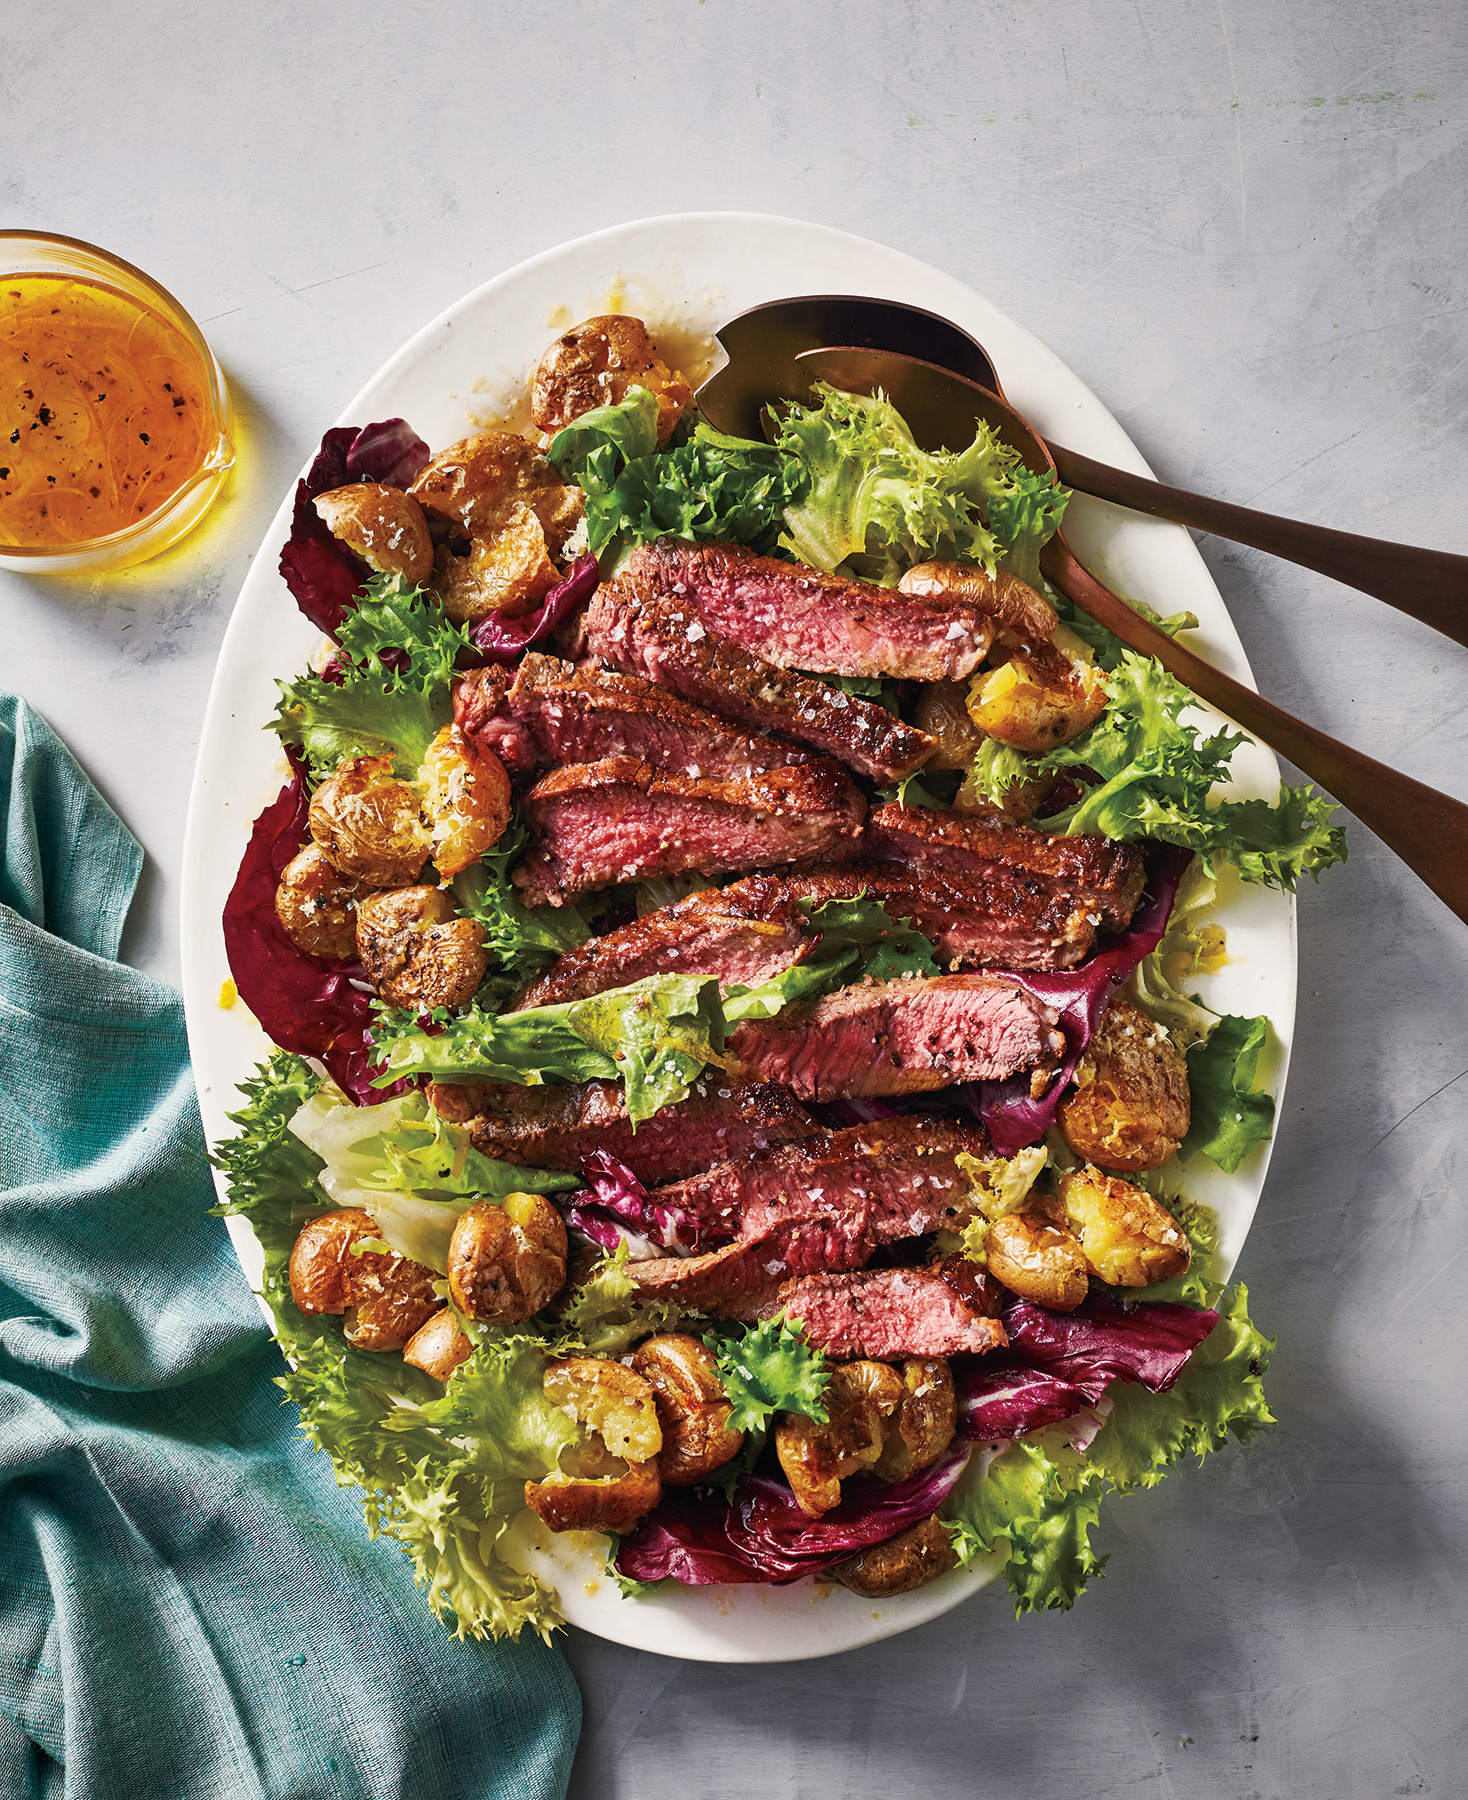 Steak Salad With Crispy Potatoes and Lemon-Parmesan Dressing (1018FOO)